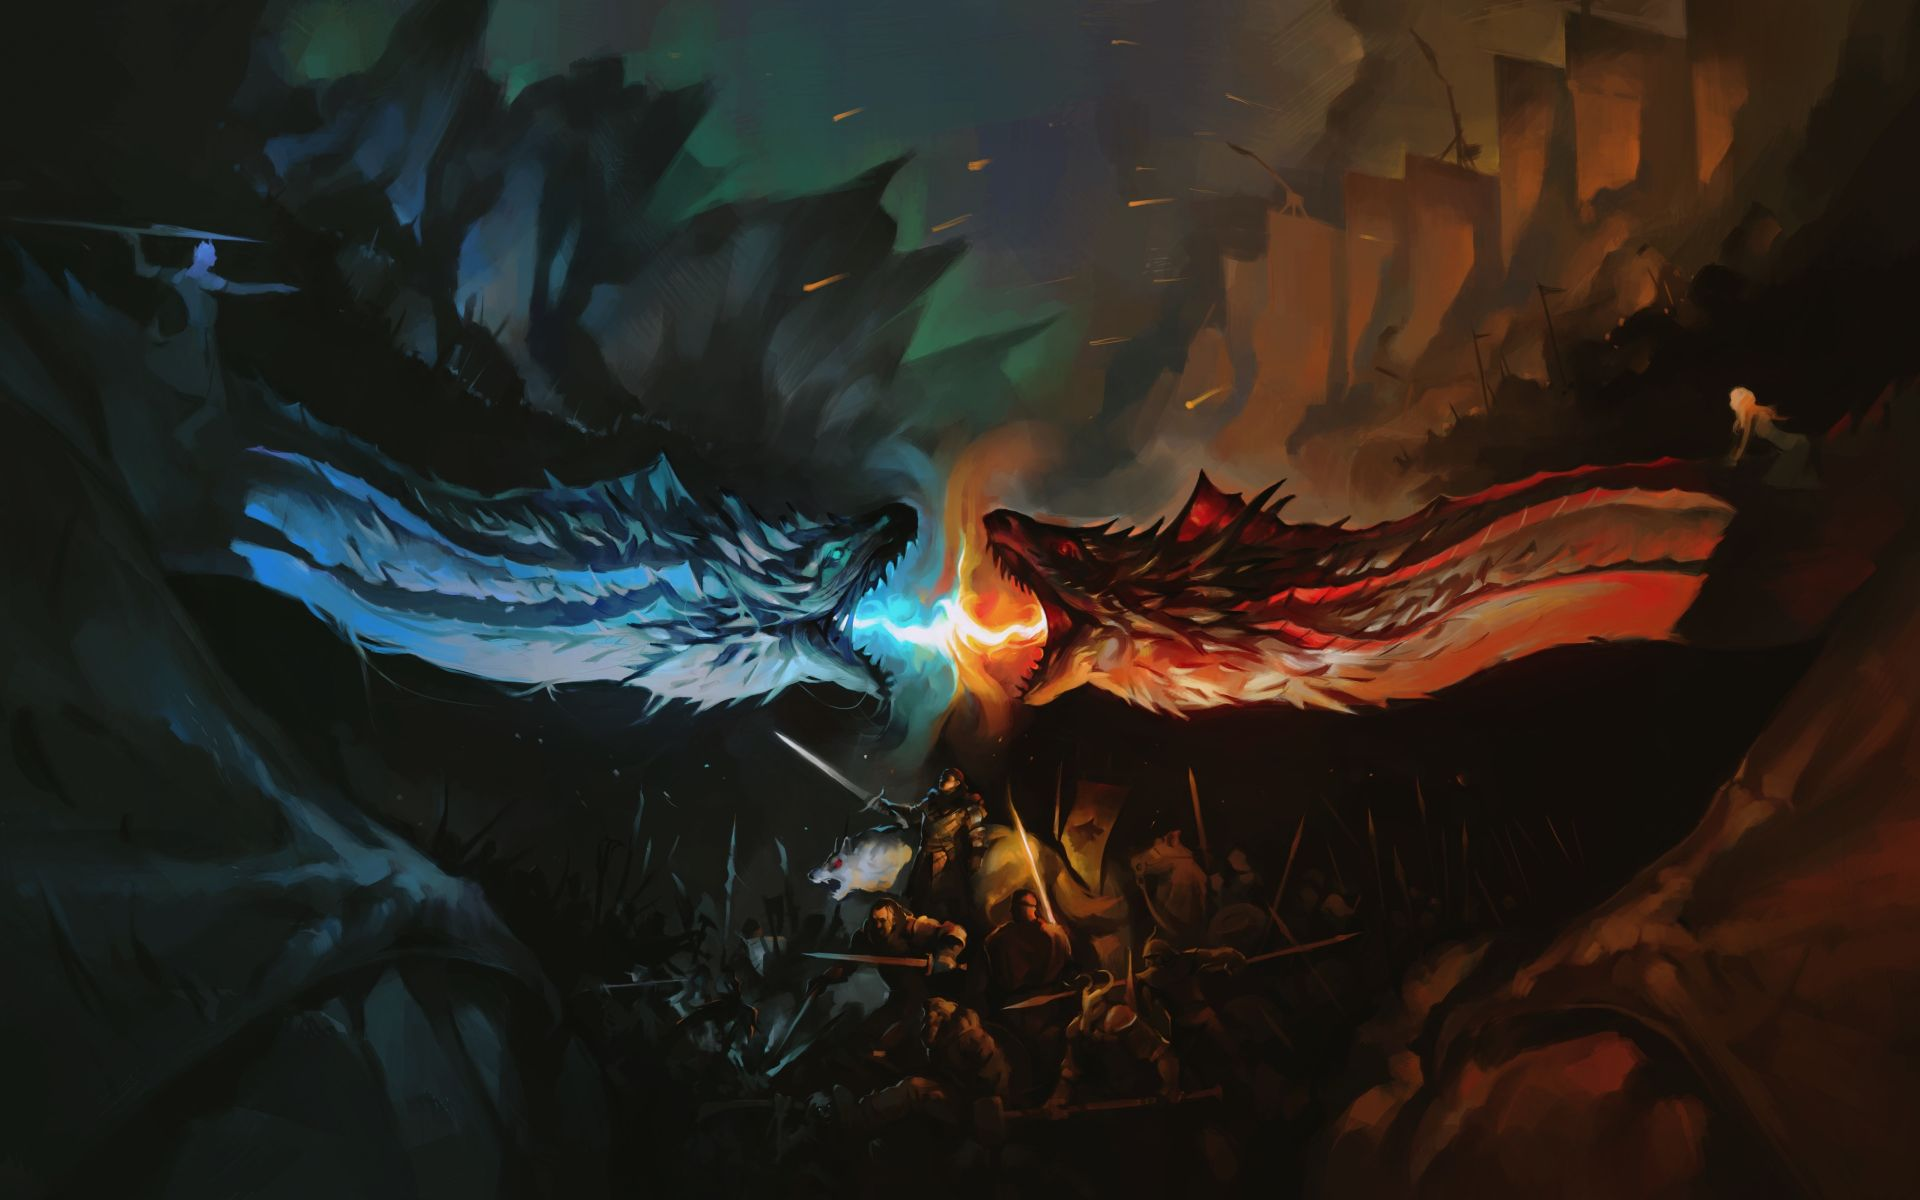 Game of Thrones two dragons